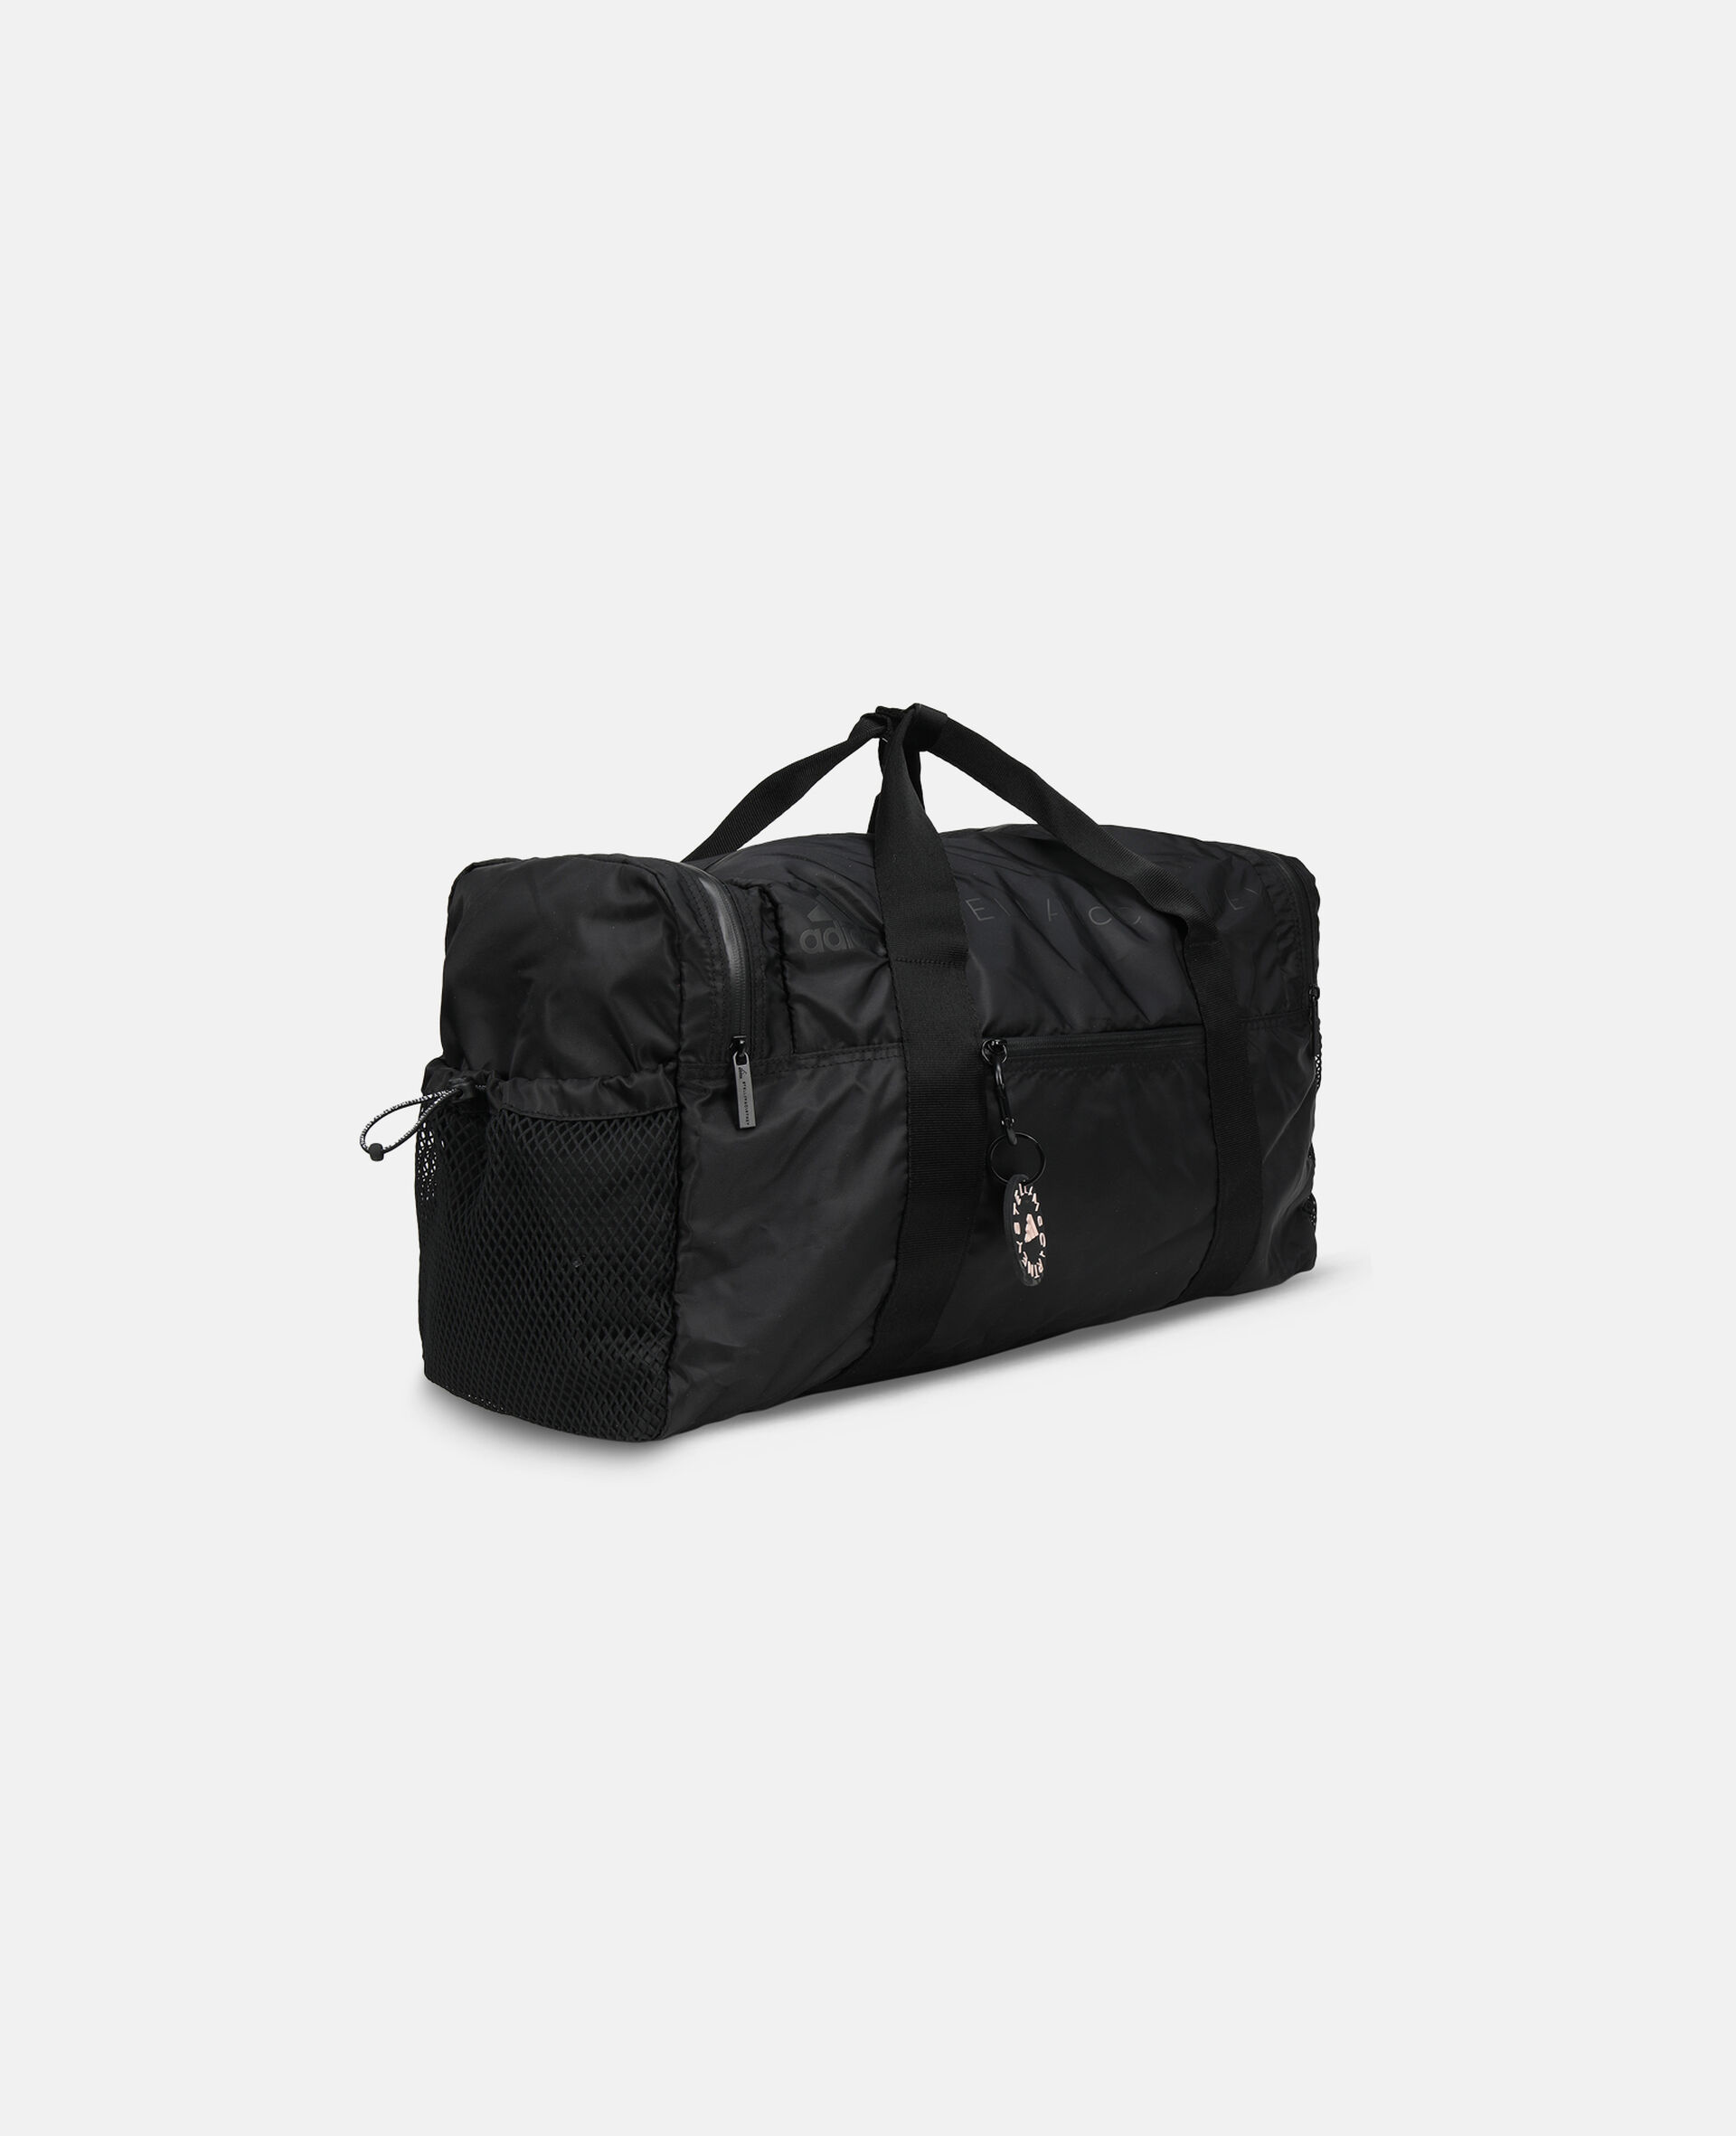 Black Squared Studio Bag-Black-large image number 1